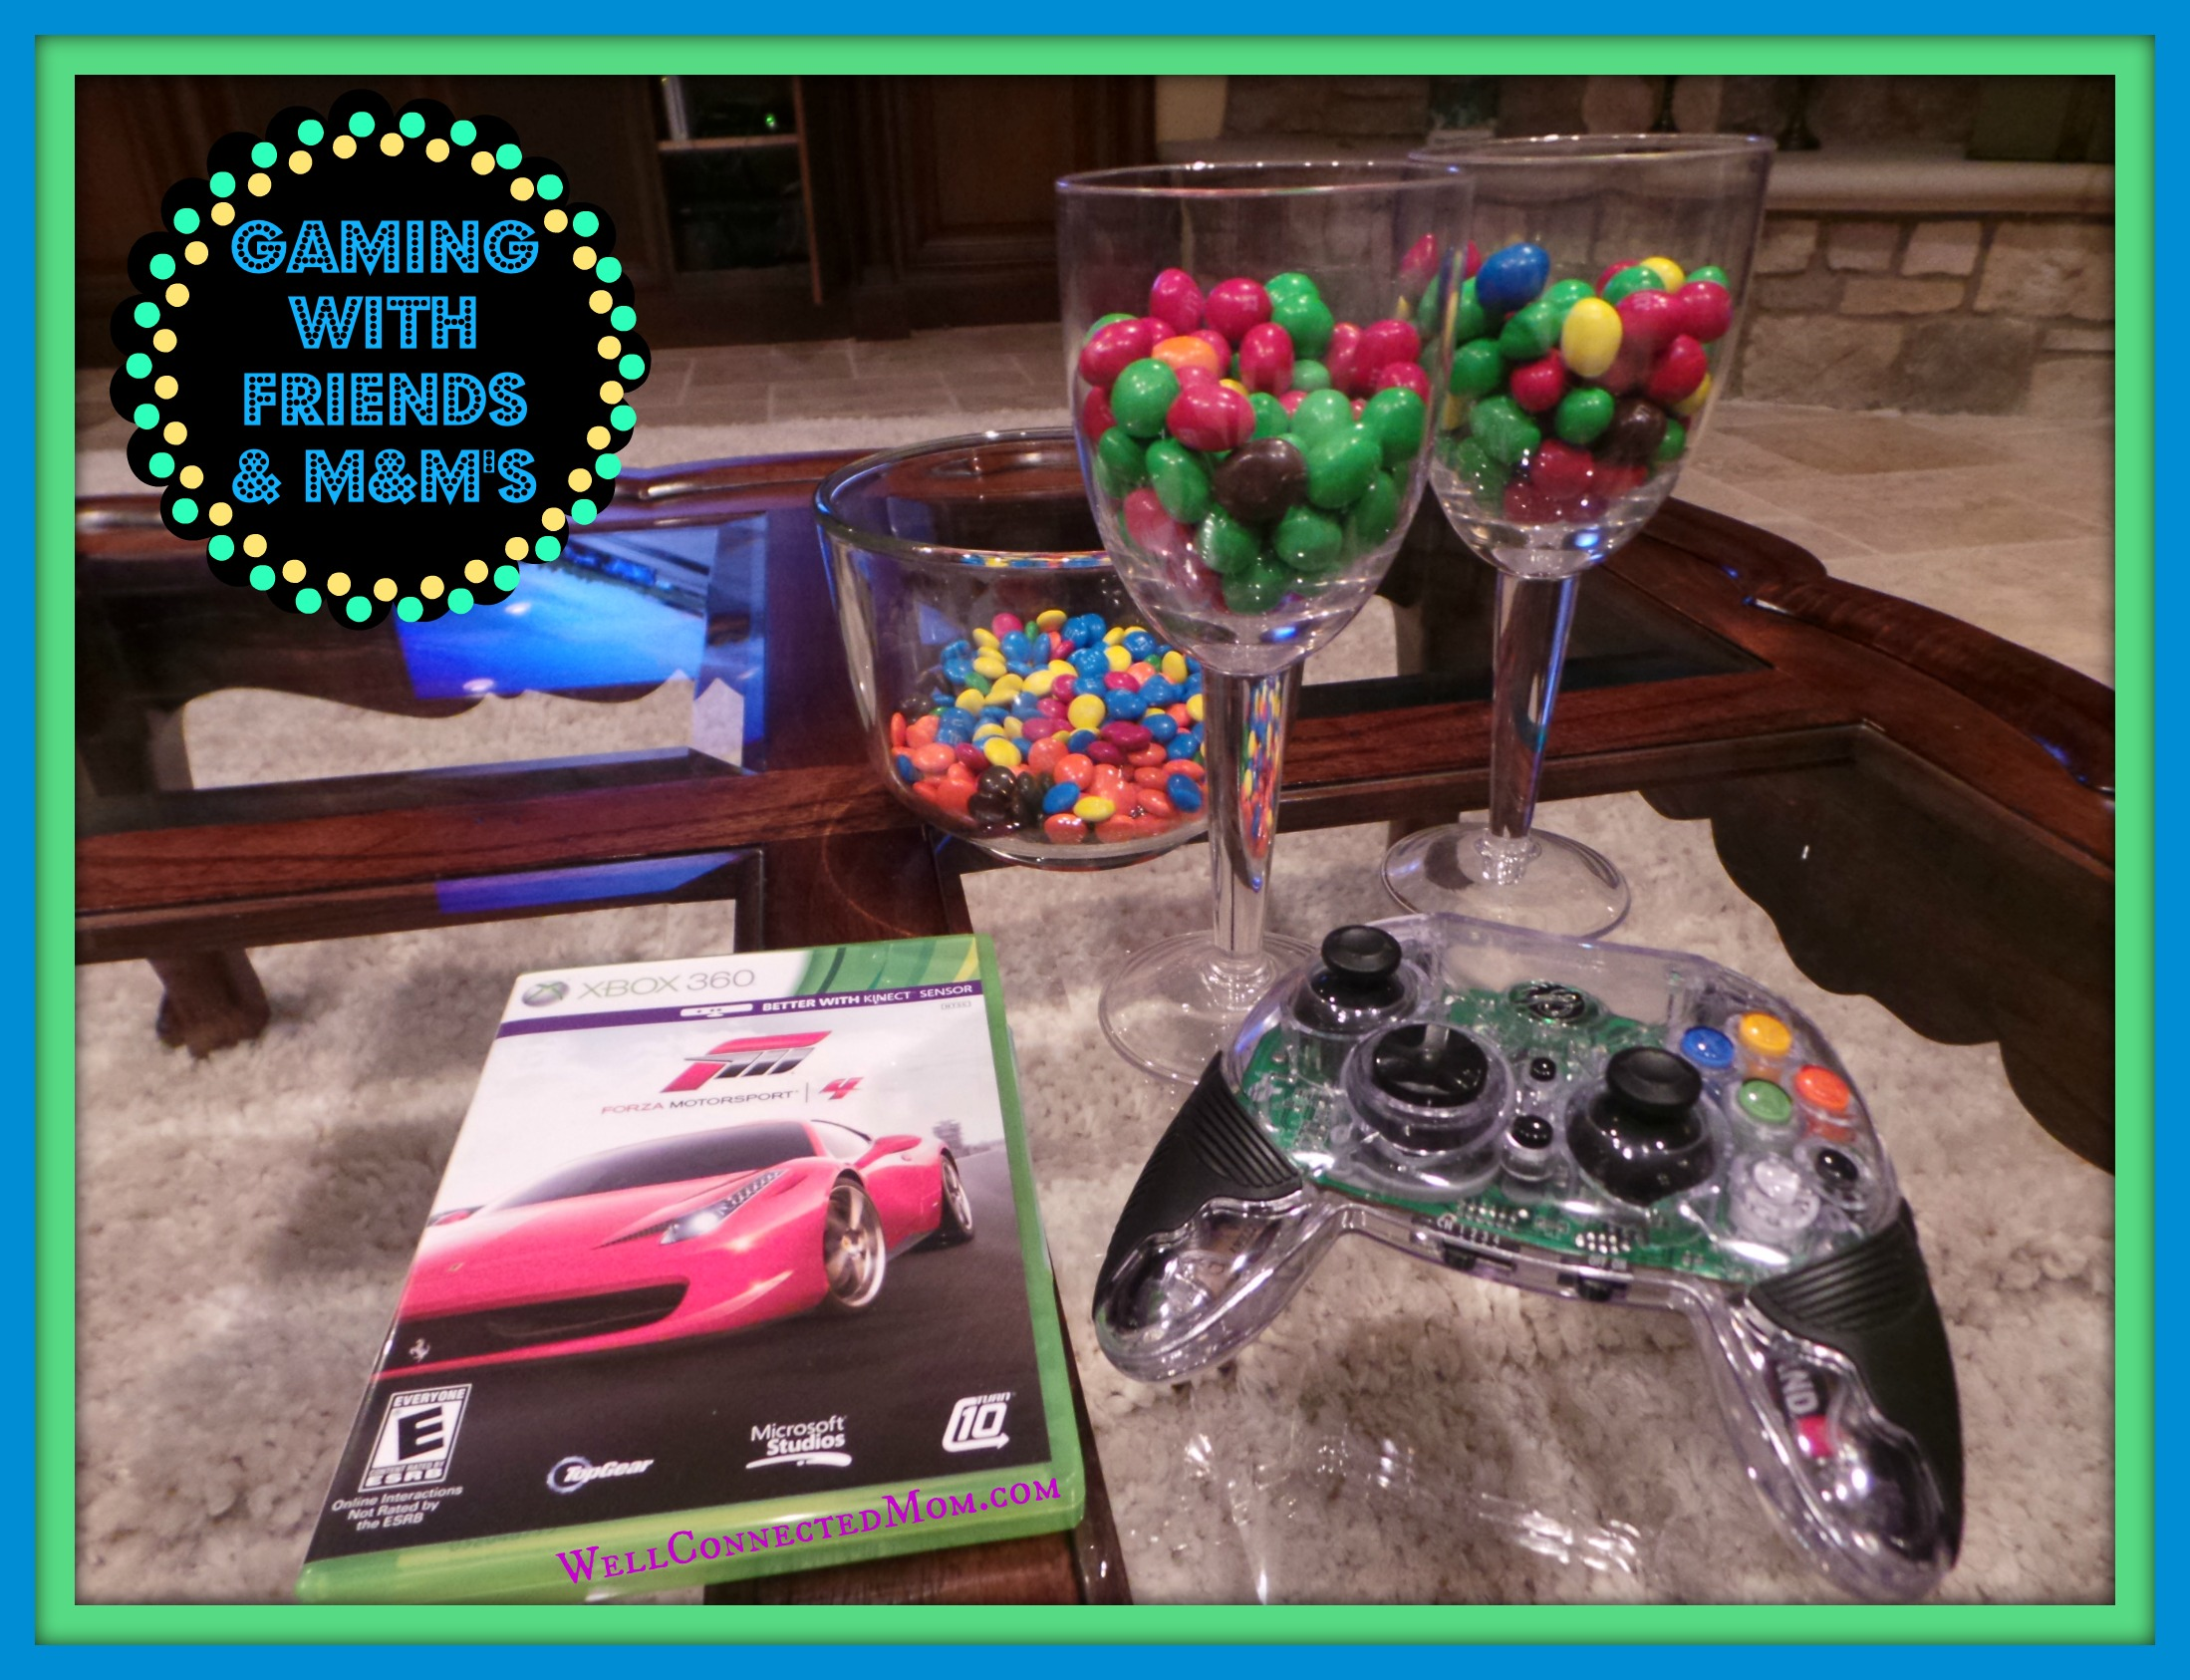 Video Games with Friends and M&M's